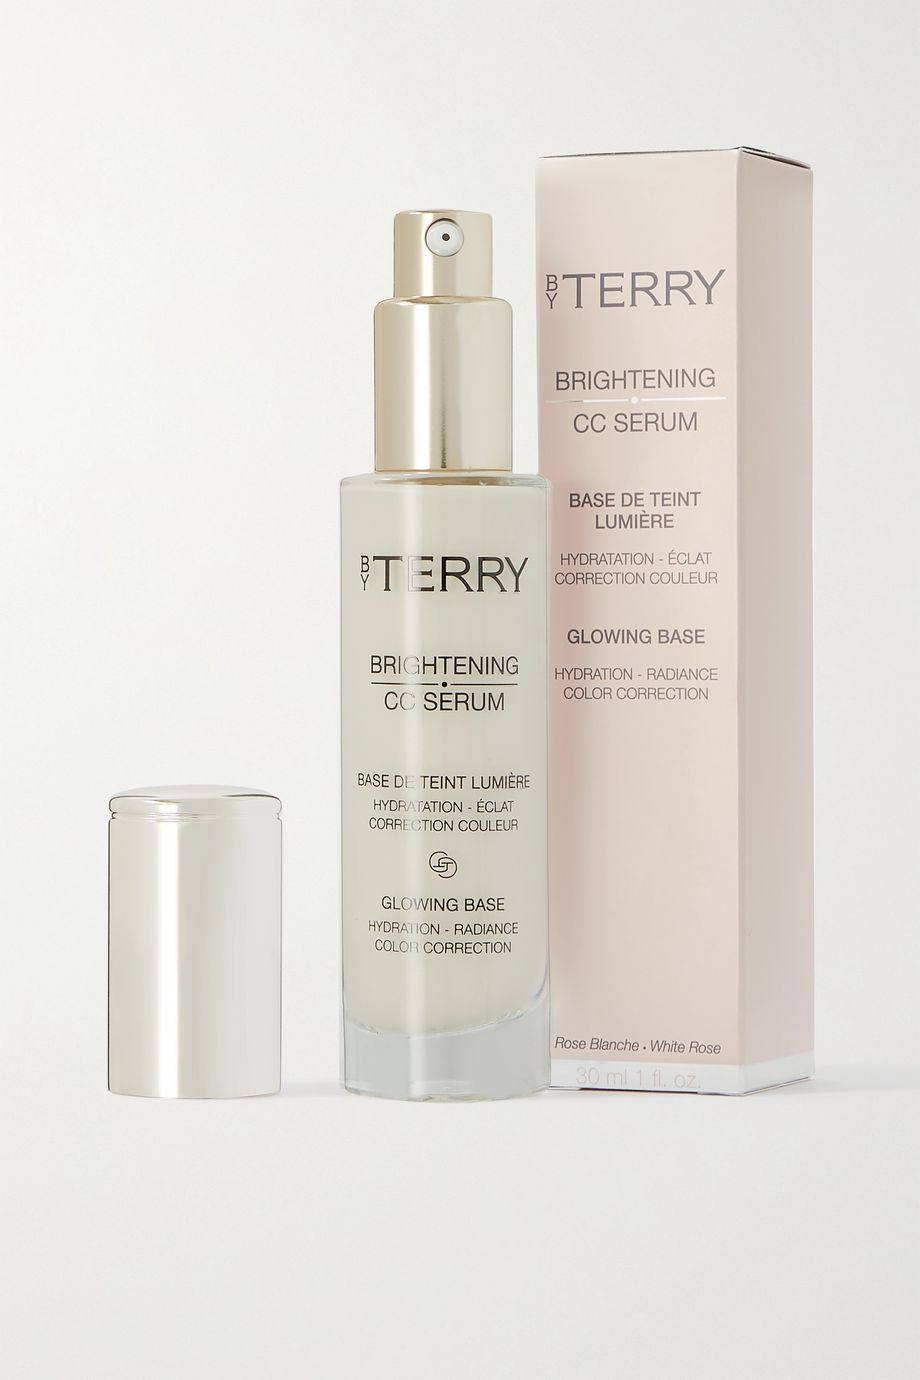 BY TERRY Soin CC Cellularose Brightening, Immaculate Light, 30ml